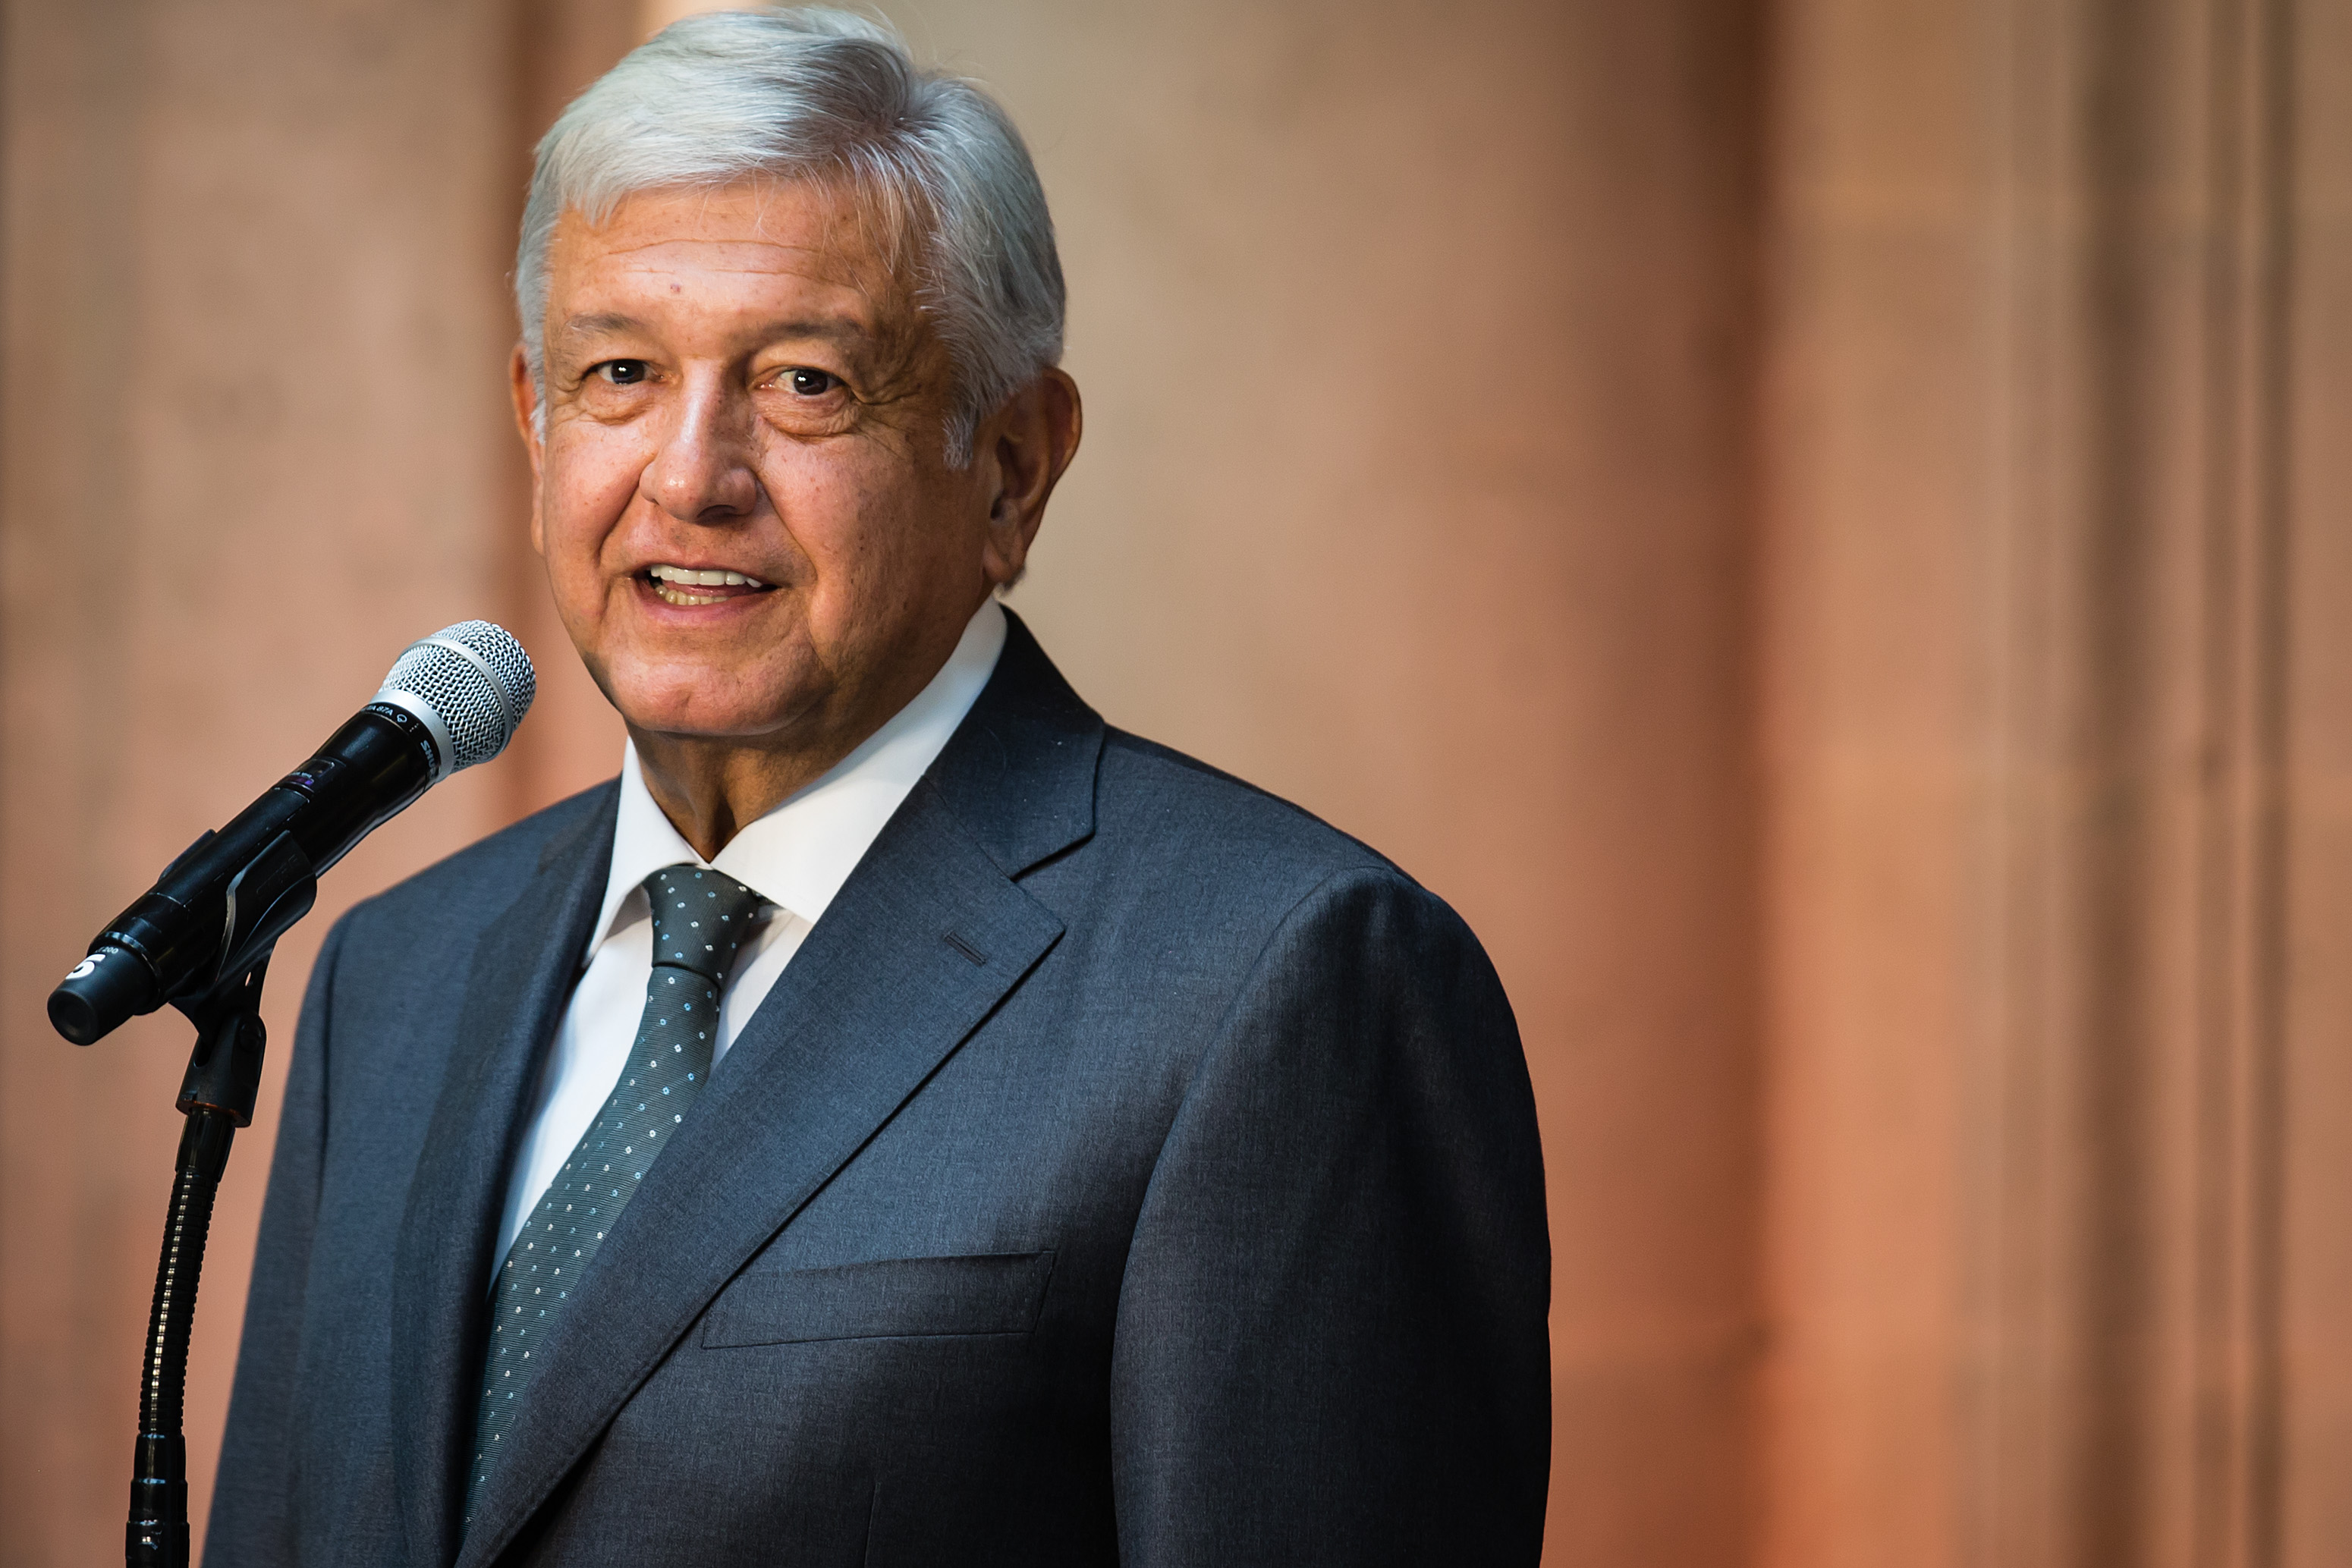 AMLO Kissed a Female Reporter Instead of Answering Her Questions